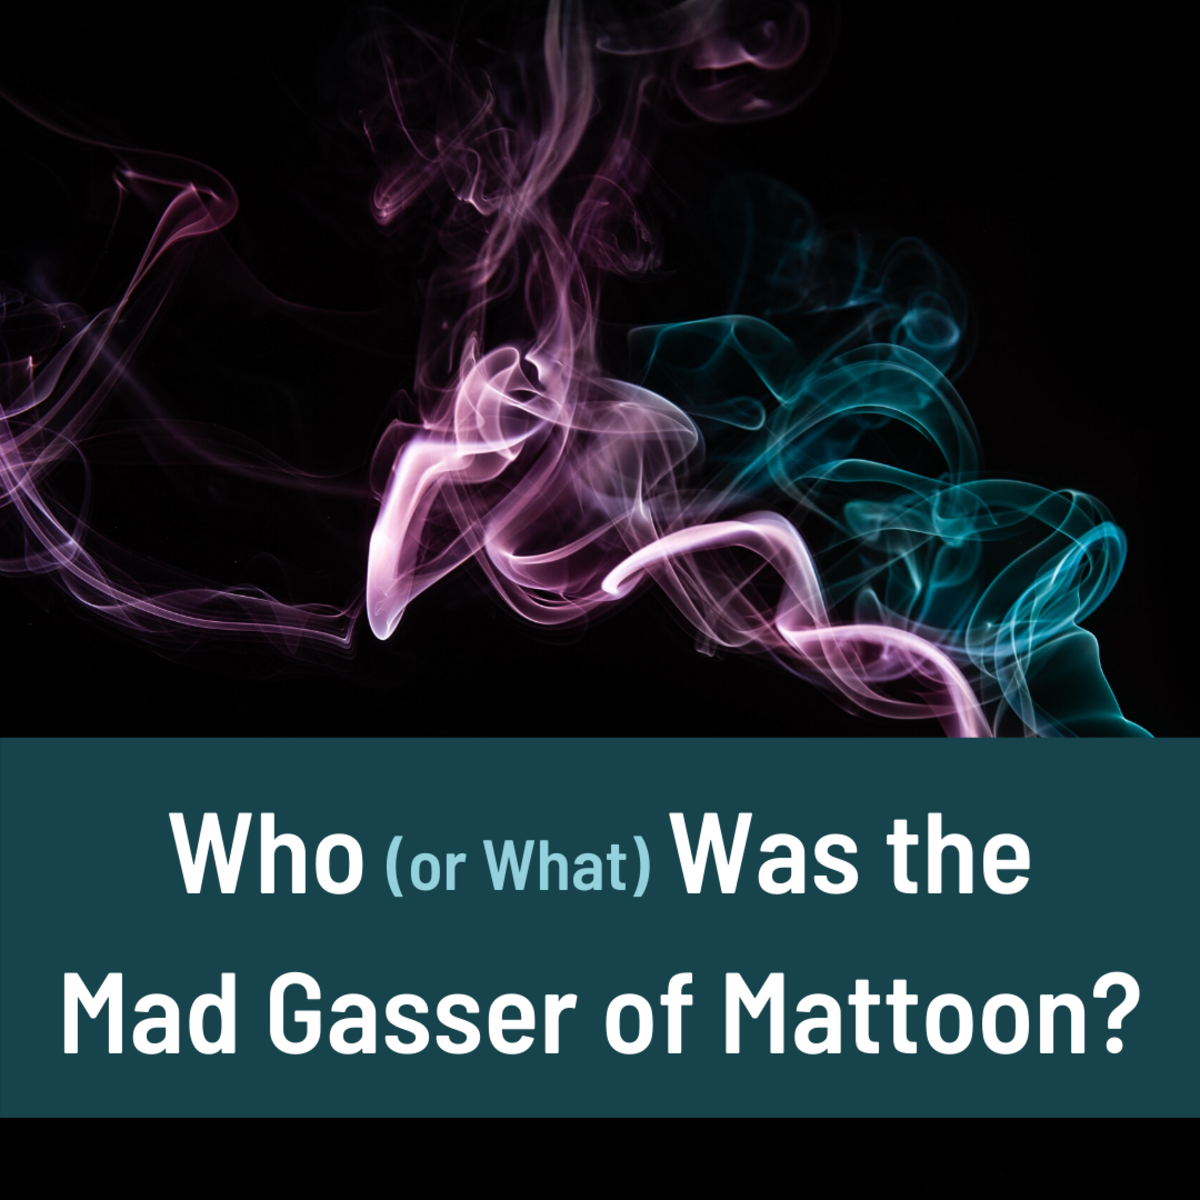 Possible Explanations for the Mad Gasser of Mattoon